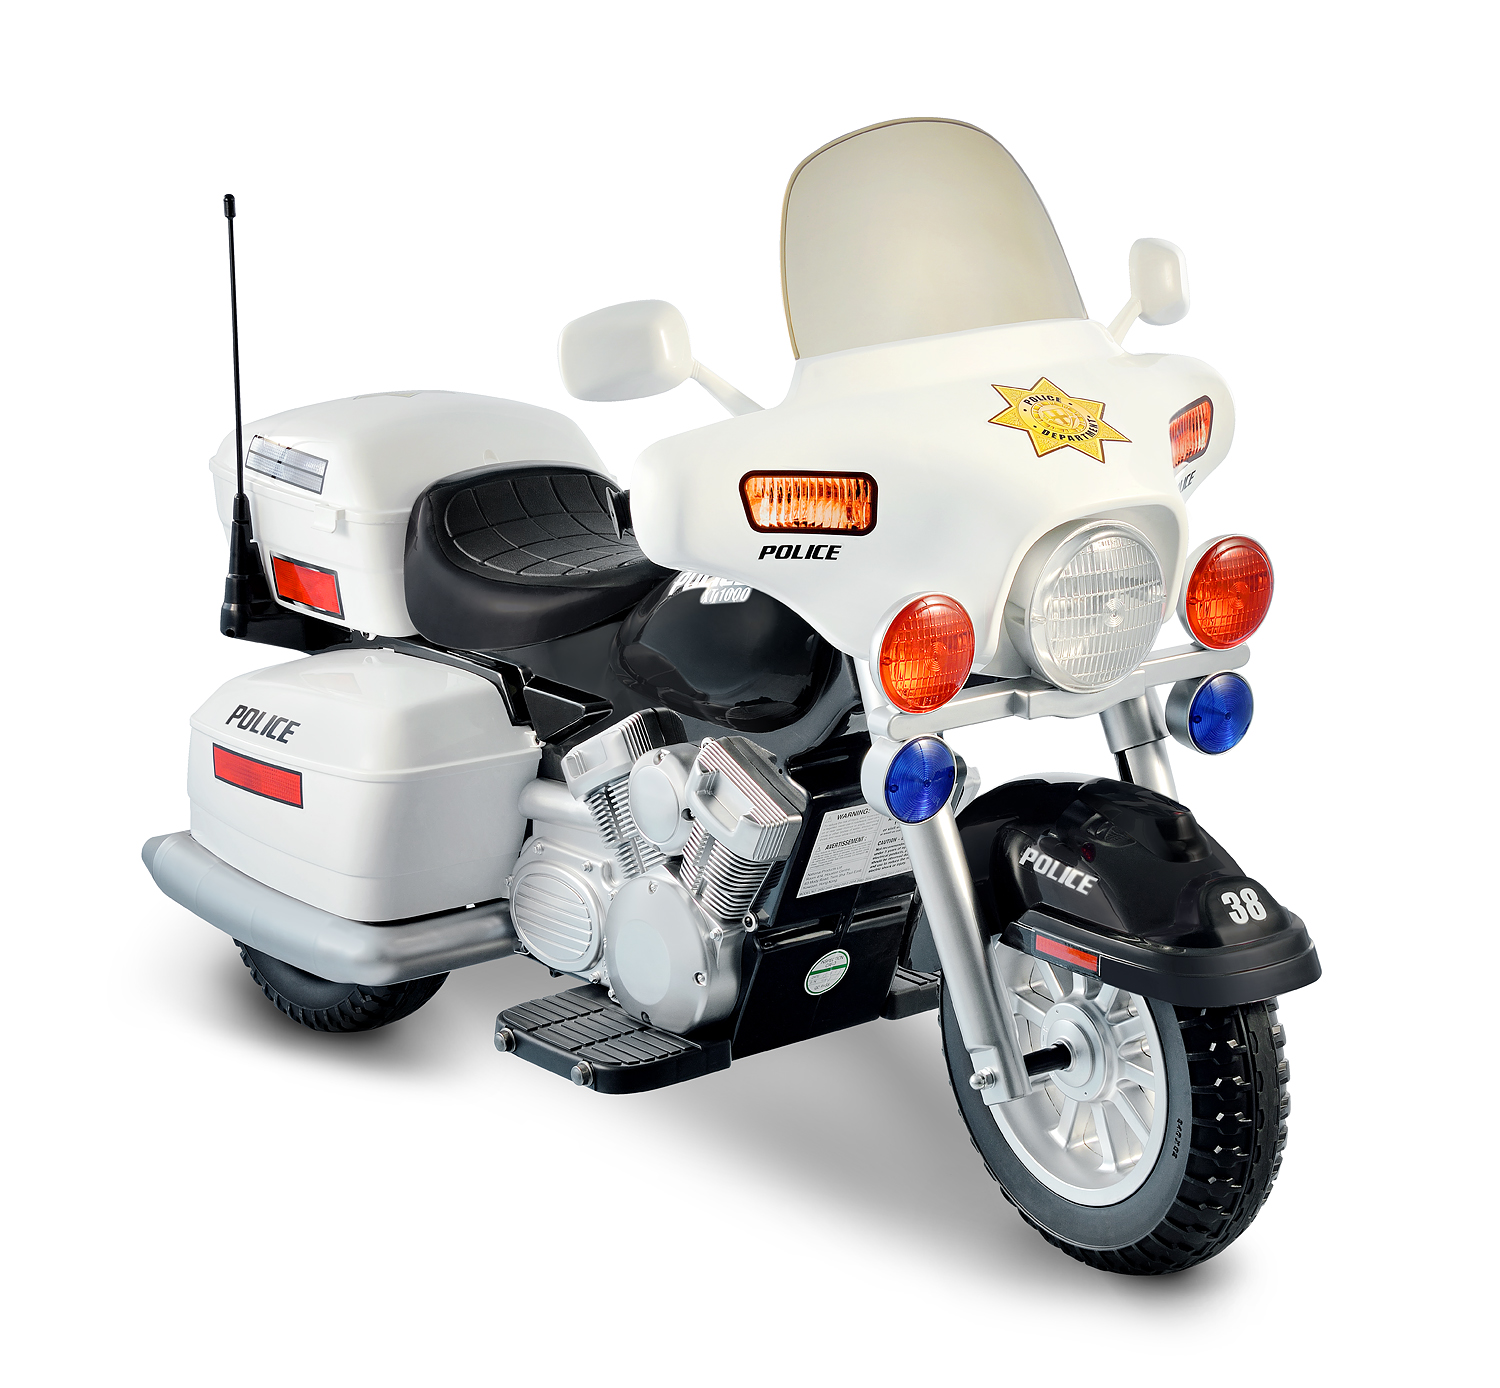 hight resolution of kid motorz police motorcycle 12 volt battery powered ride on white walmart com